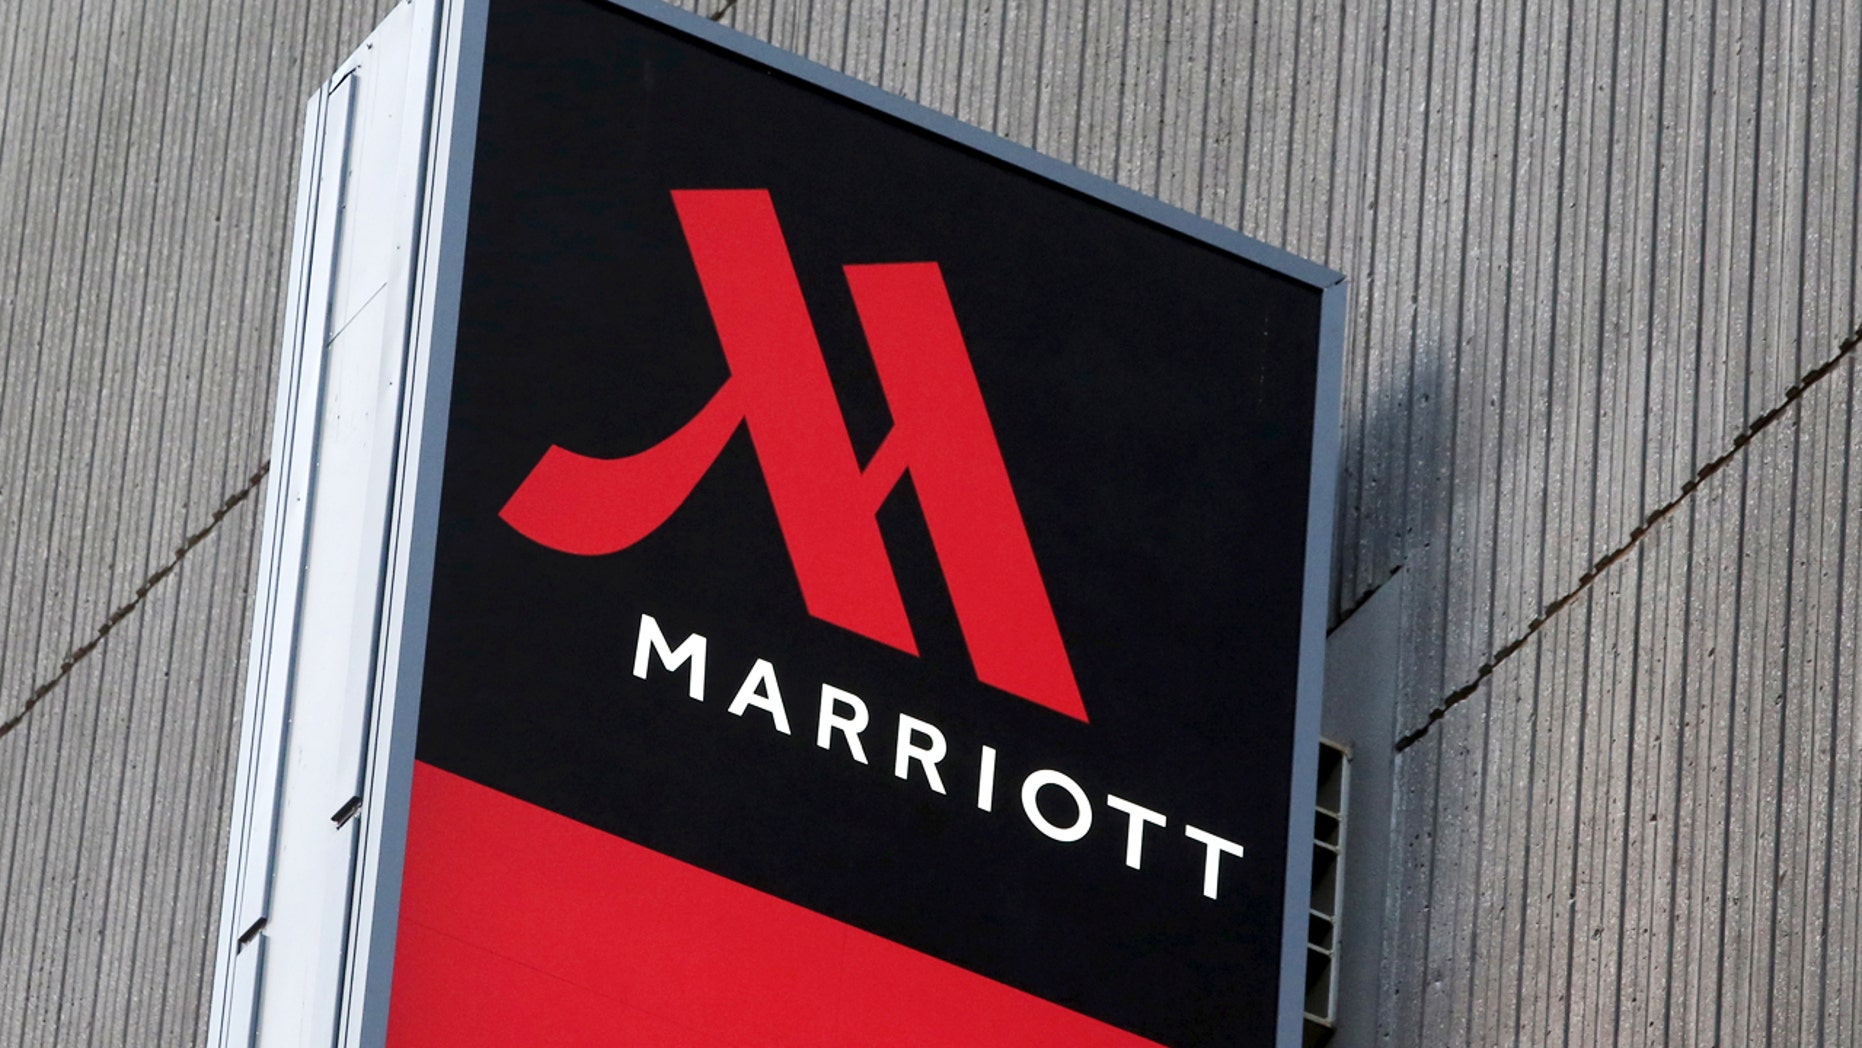 Signage for the New York Marriott Marquis is seen in Manhattan, New York, November 16, 2015.  REUTERS/Andrew Kelly/File Photo - RTSOOZG